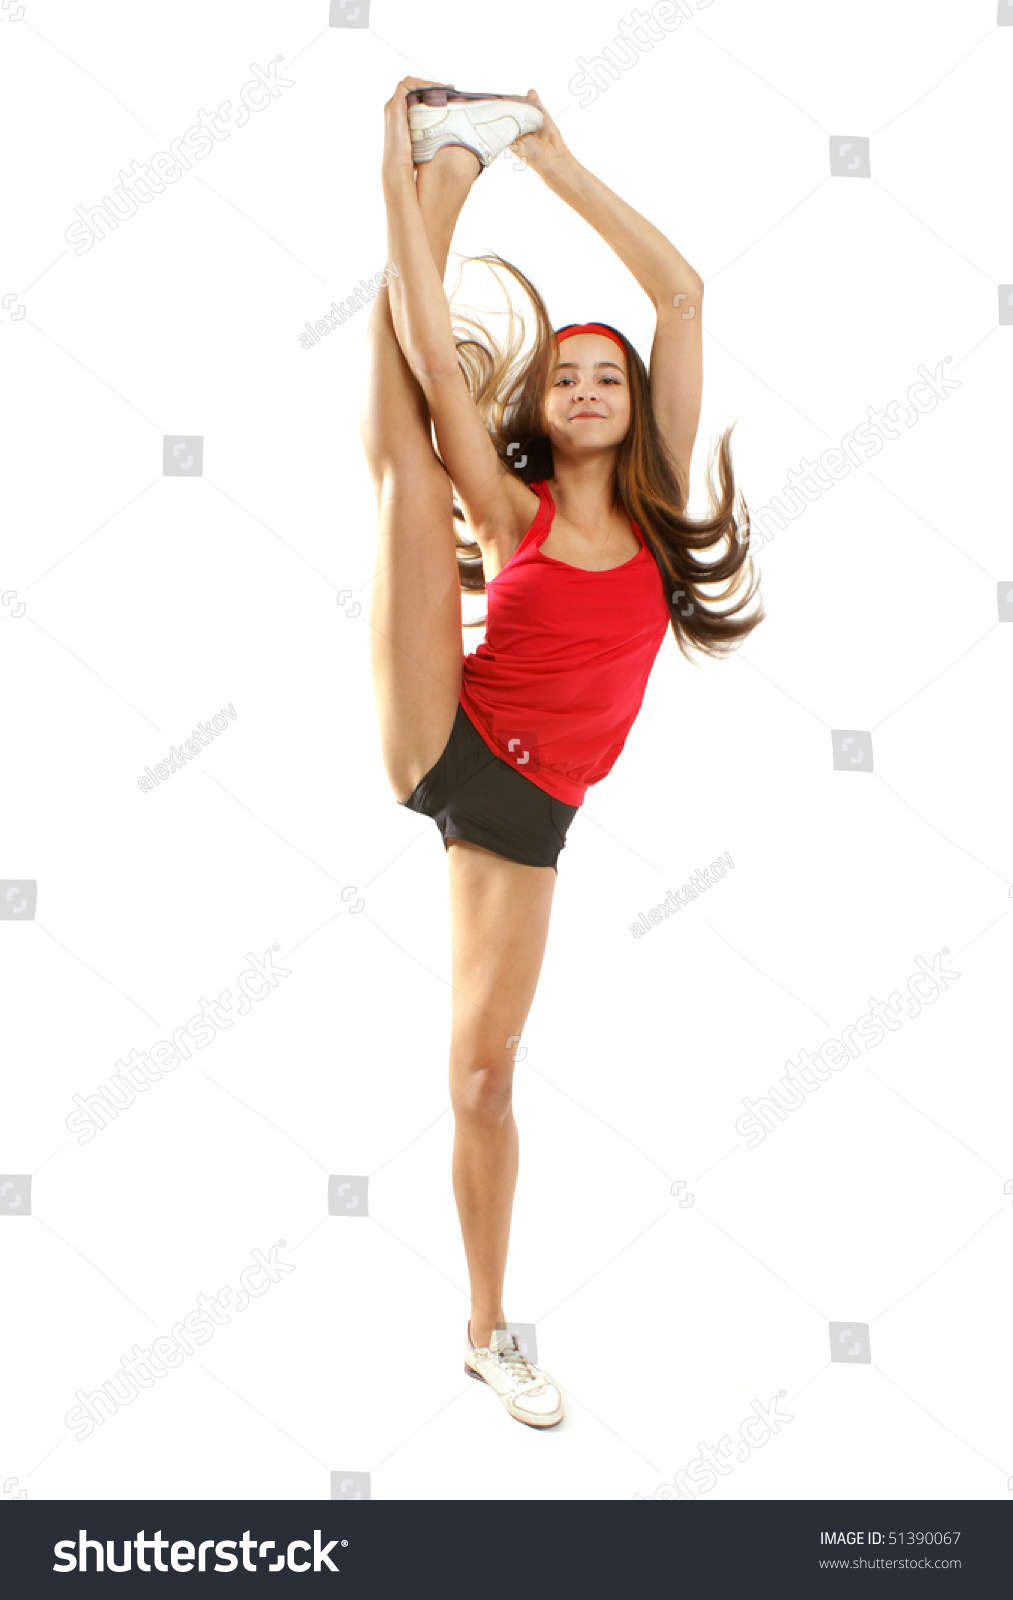 Flexible Girl Gymnastic Pose Stock Photo 51390067 -6469